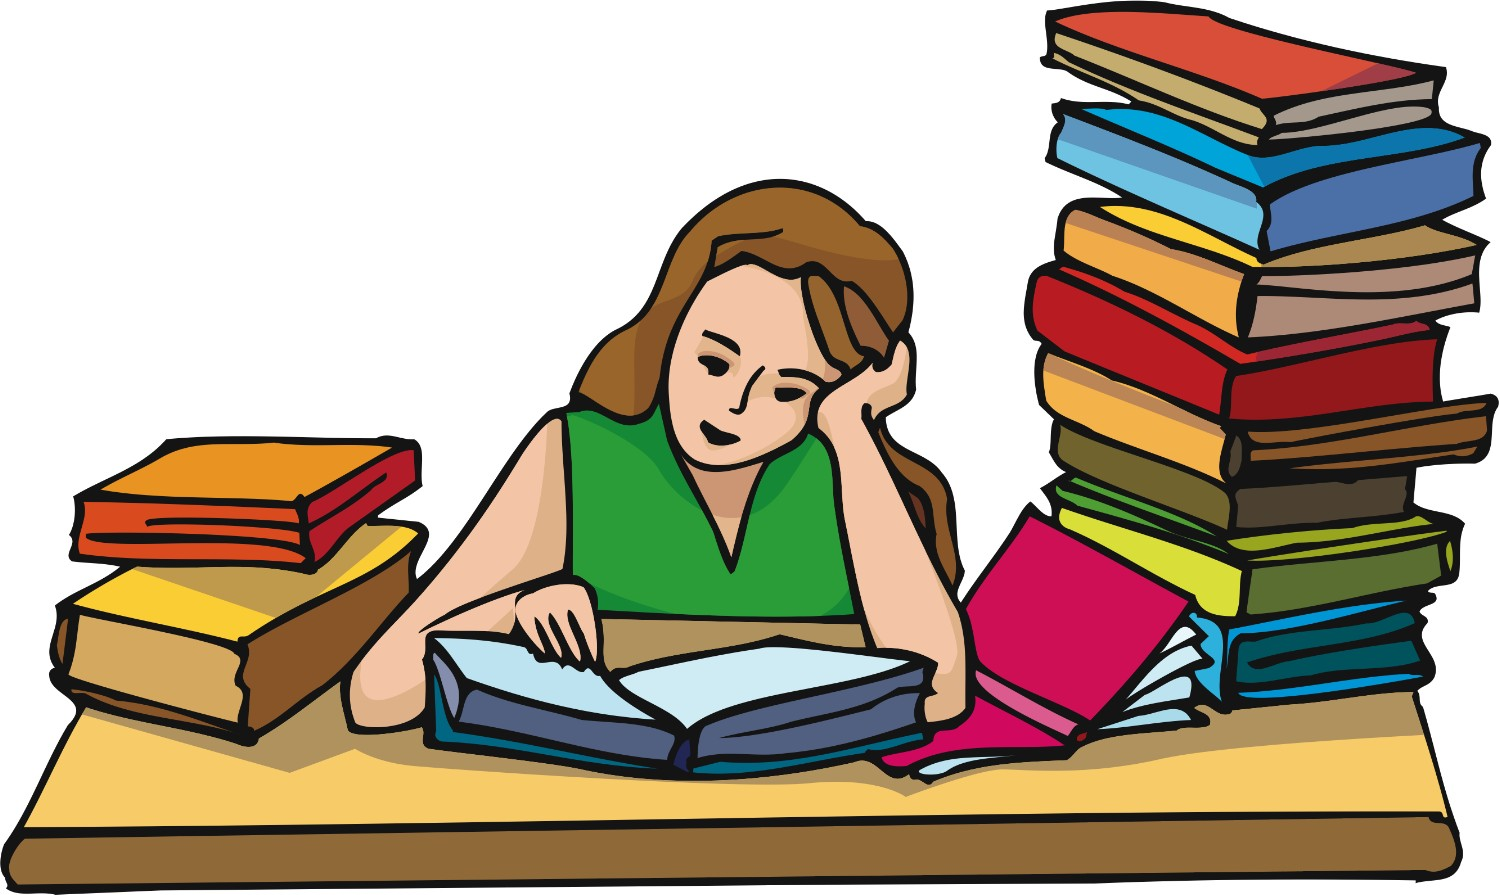 Person studying clipart.